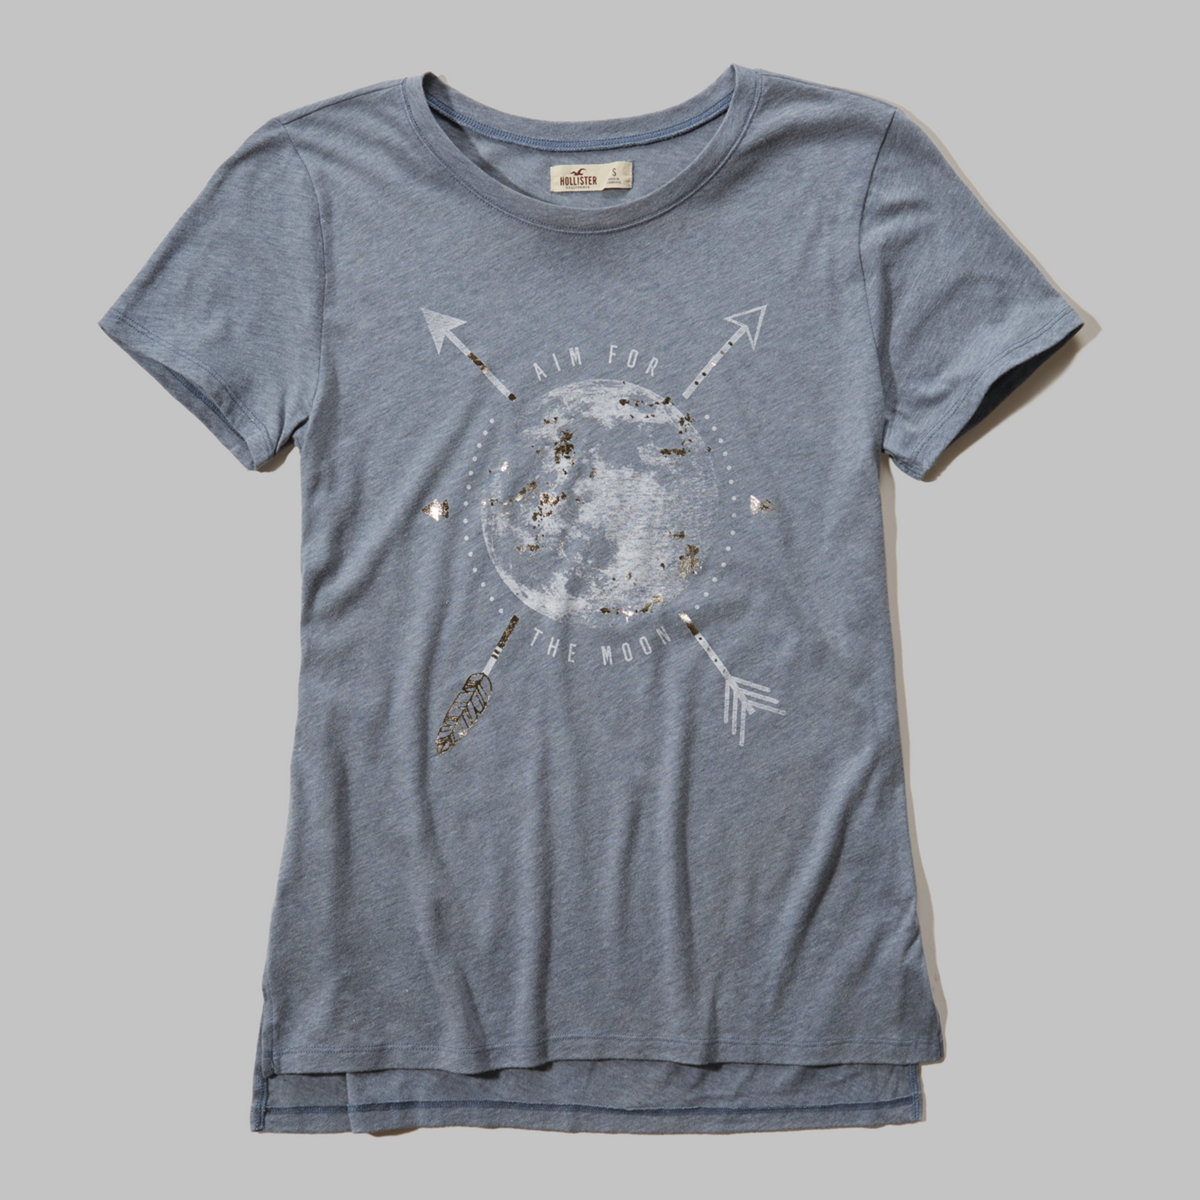 Aim For The Moon Graphic Tee